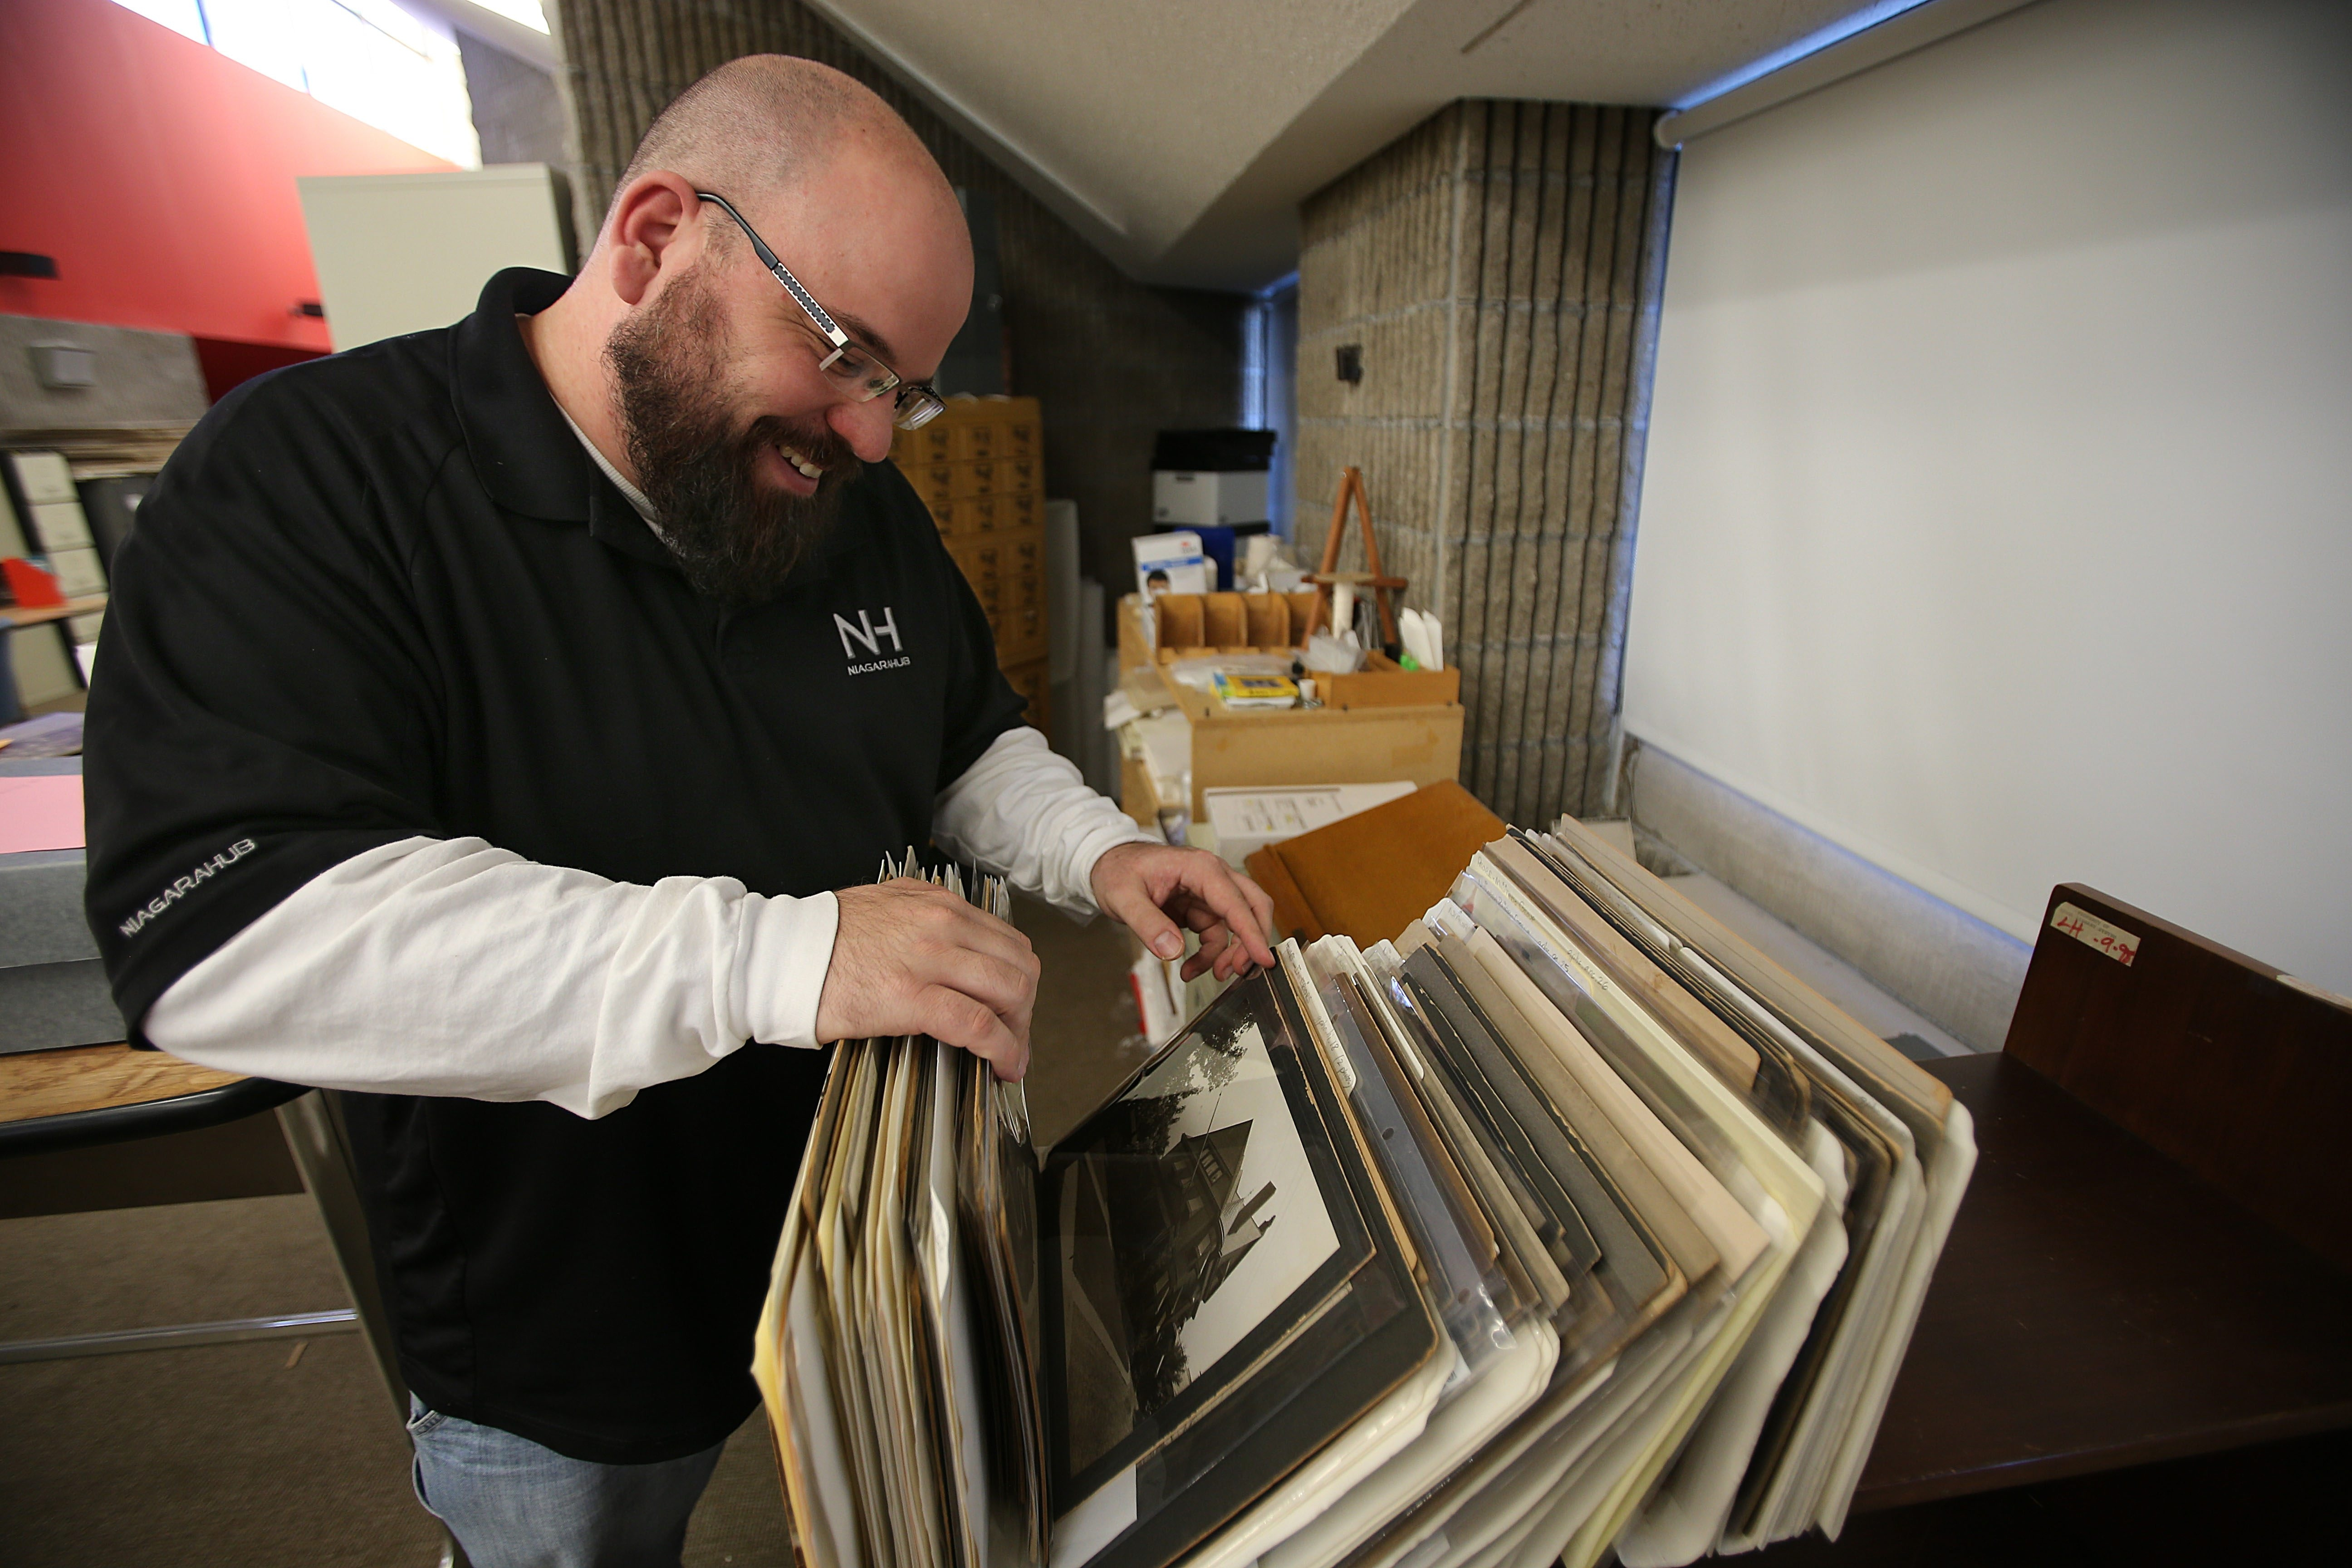 Niagara Falls City Historian Christopher Stoianoff looks through piles of old photos waiting to be scanned into a computer at the main branch of the Niagara Falls Public Library. The photos will be available online.